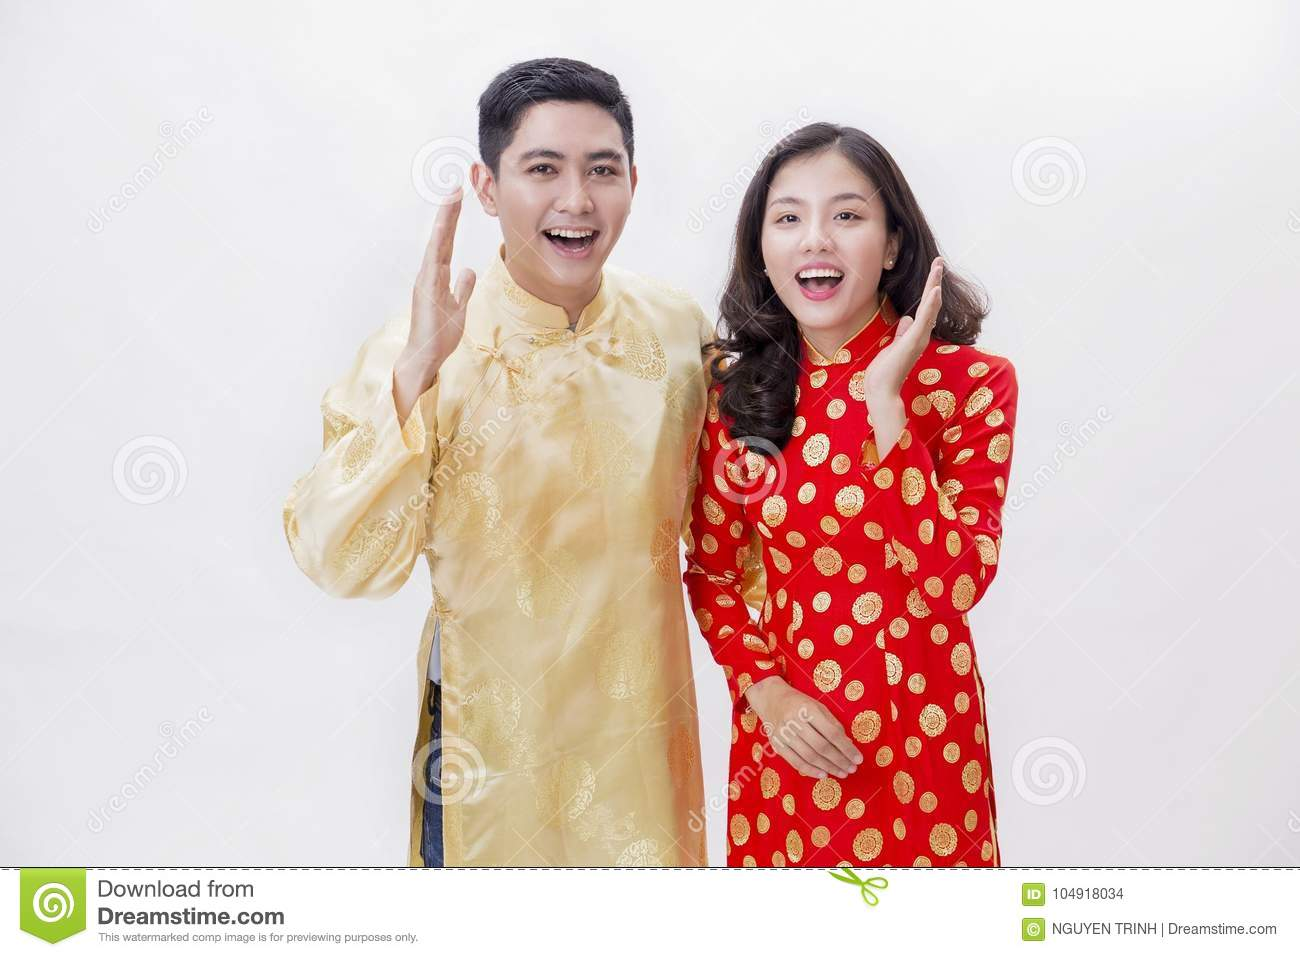 f4071398d Vietnamese Couple Smiling Wearing Ao Dai Stock Photo - Image of year ...